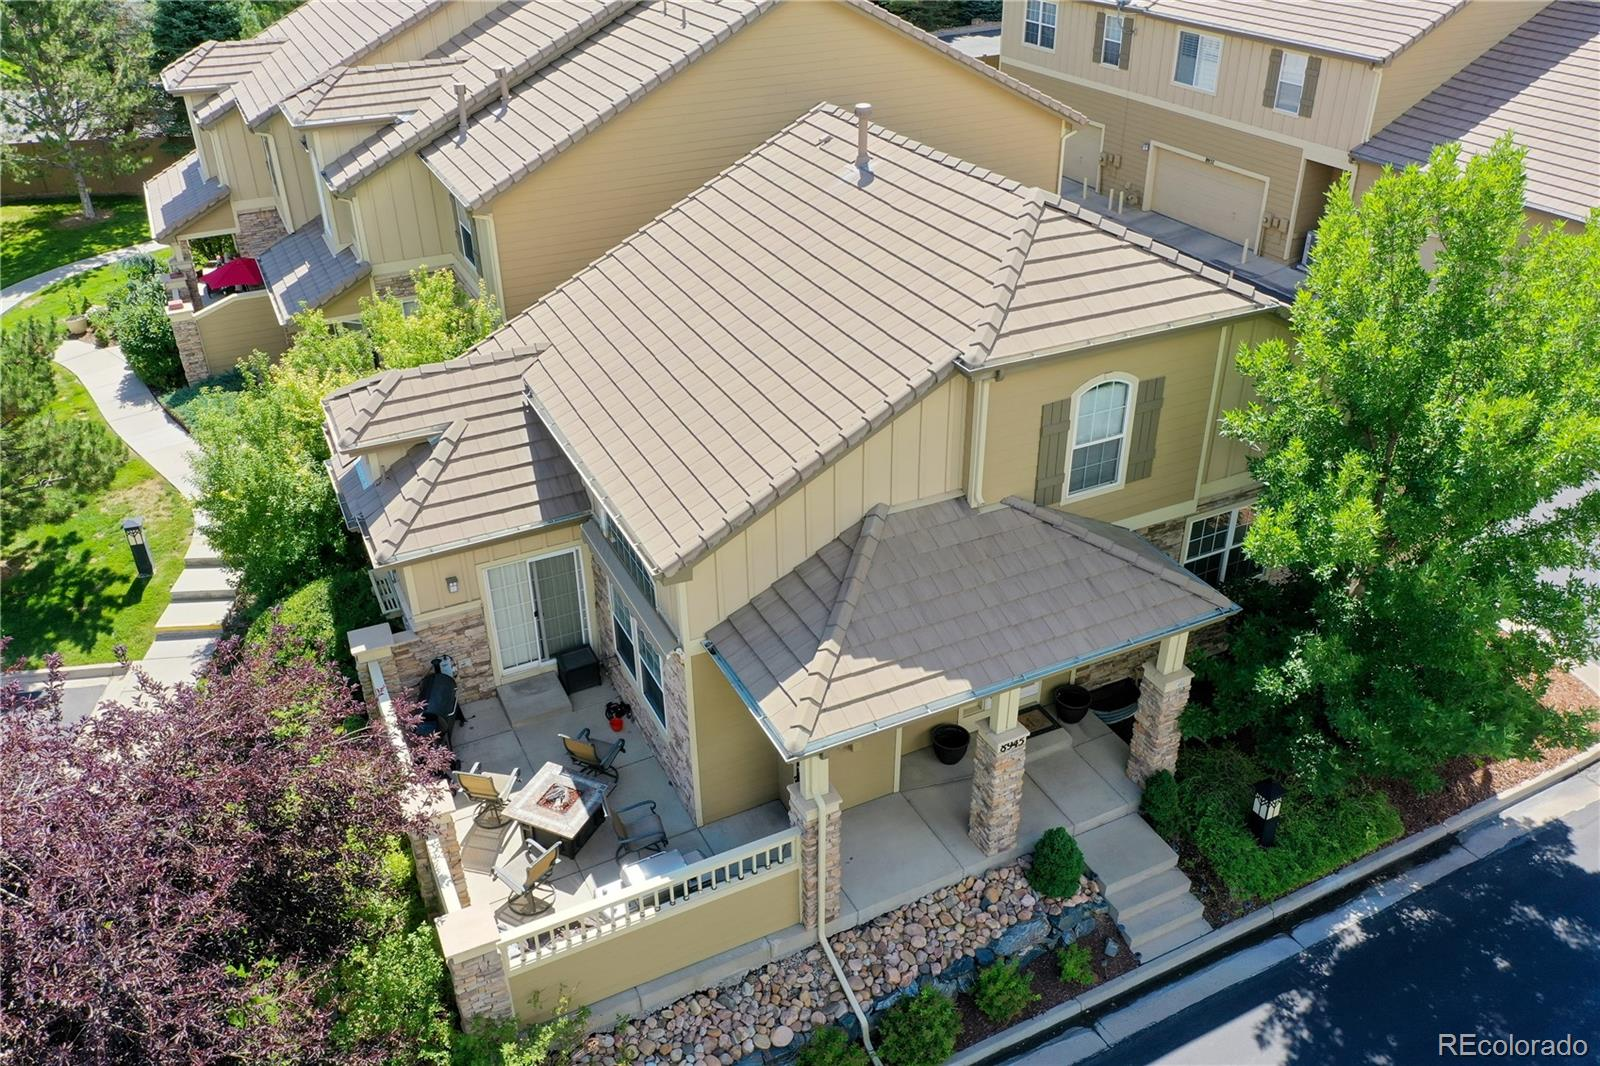 MLS# 7685605 - 1 - 8945 Tappy Toorie Circle, Highlands Ranch, CO 80129